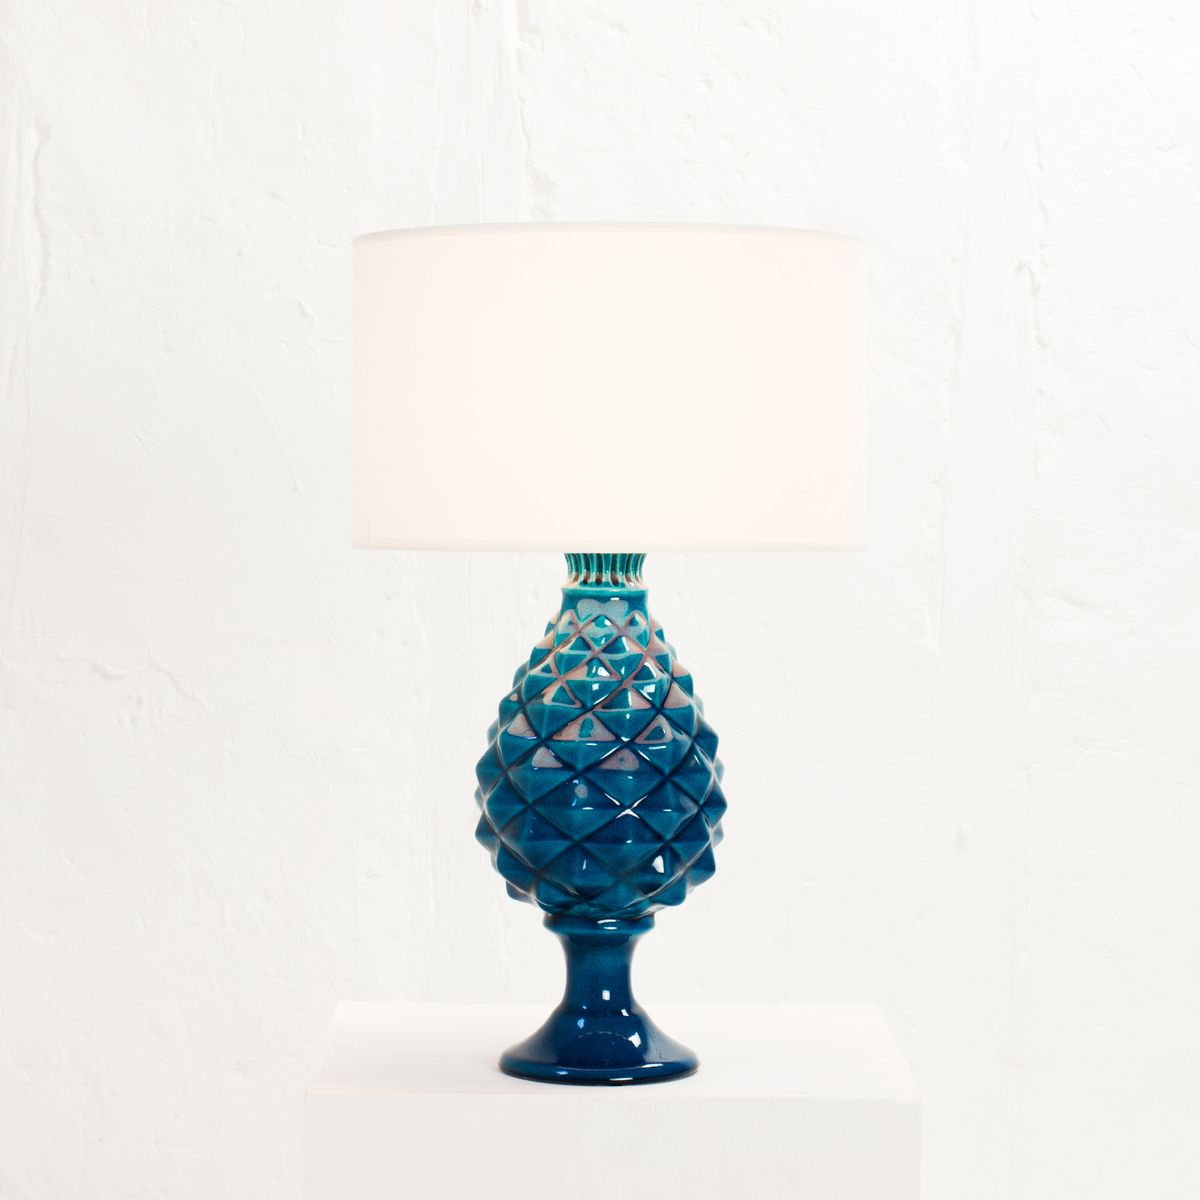 french light blue cracked ceramic table lamp by pol chambost 1970s. Black Bedroom Furniture Sets. Home Design Ideas